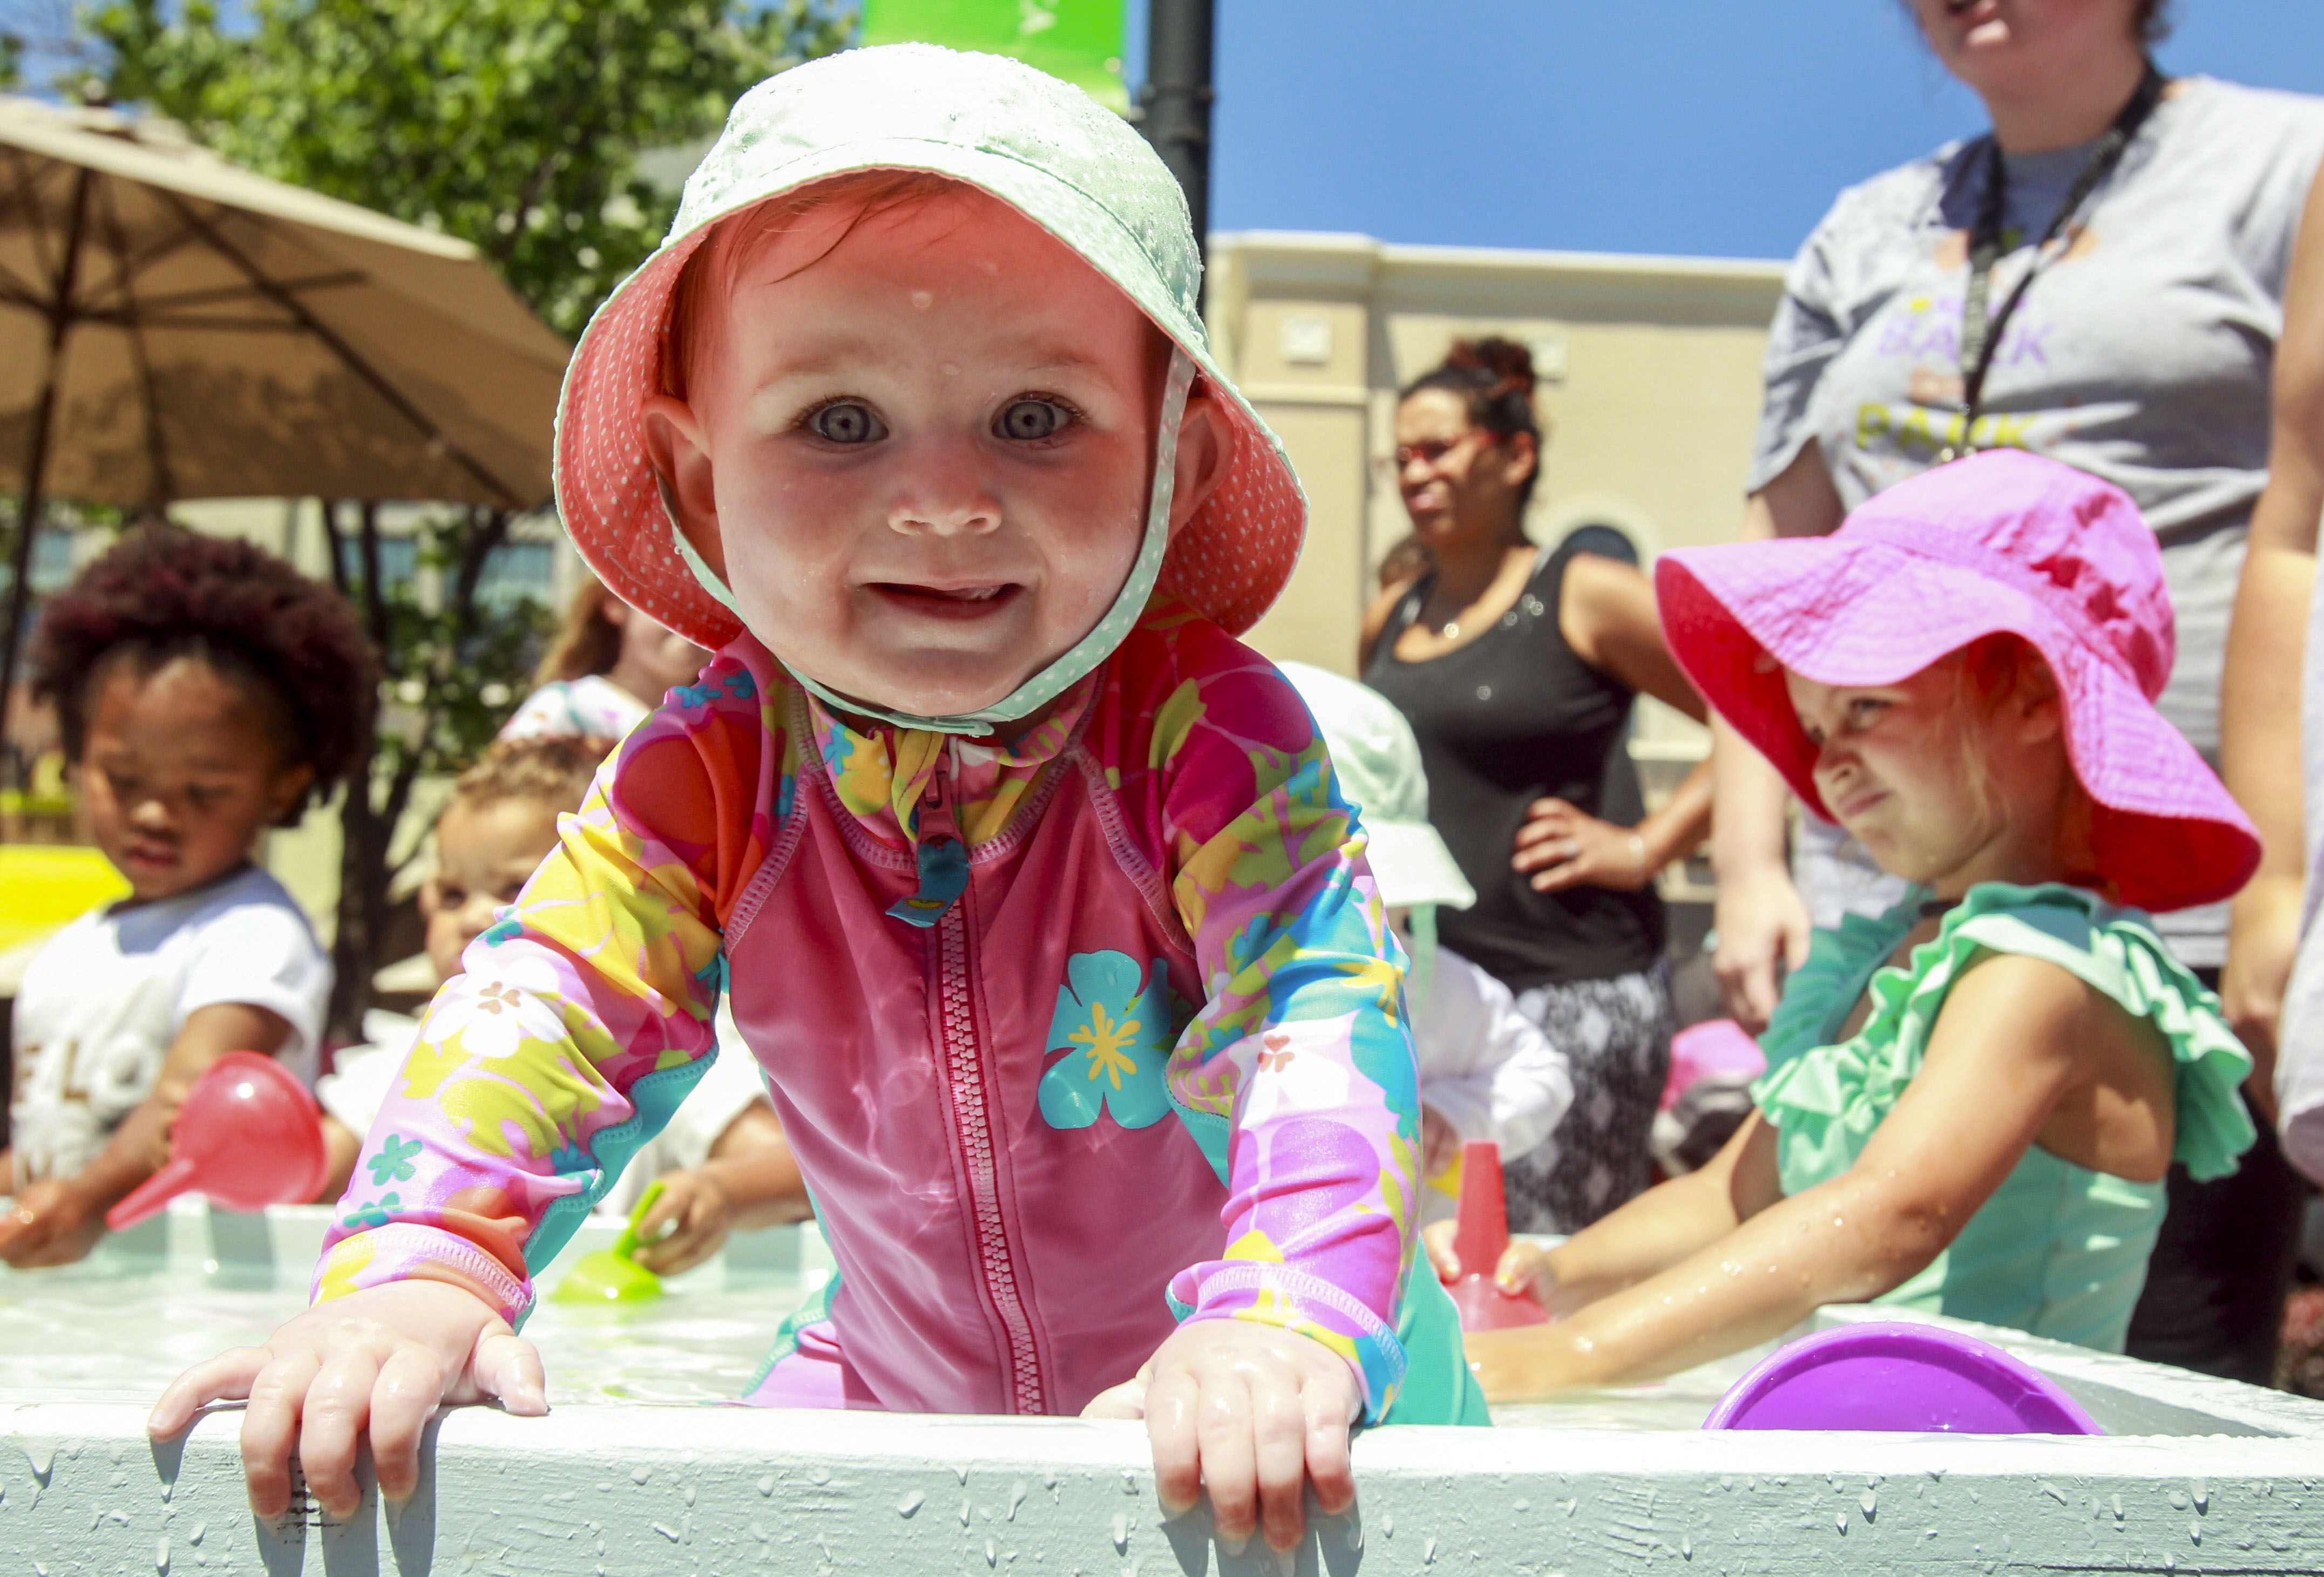 pictures of the week 20 26 2016 breah romard 9 months of toledo sits in a fountain during sand tastic at the town center at levi commons in perrysburg ohio friday 24 2016